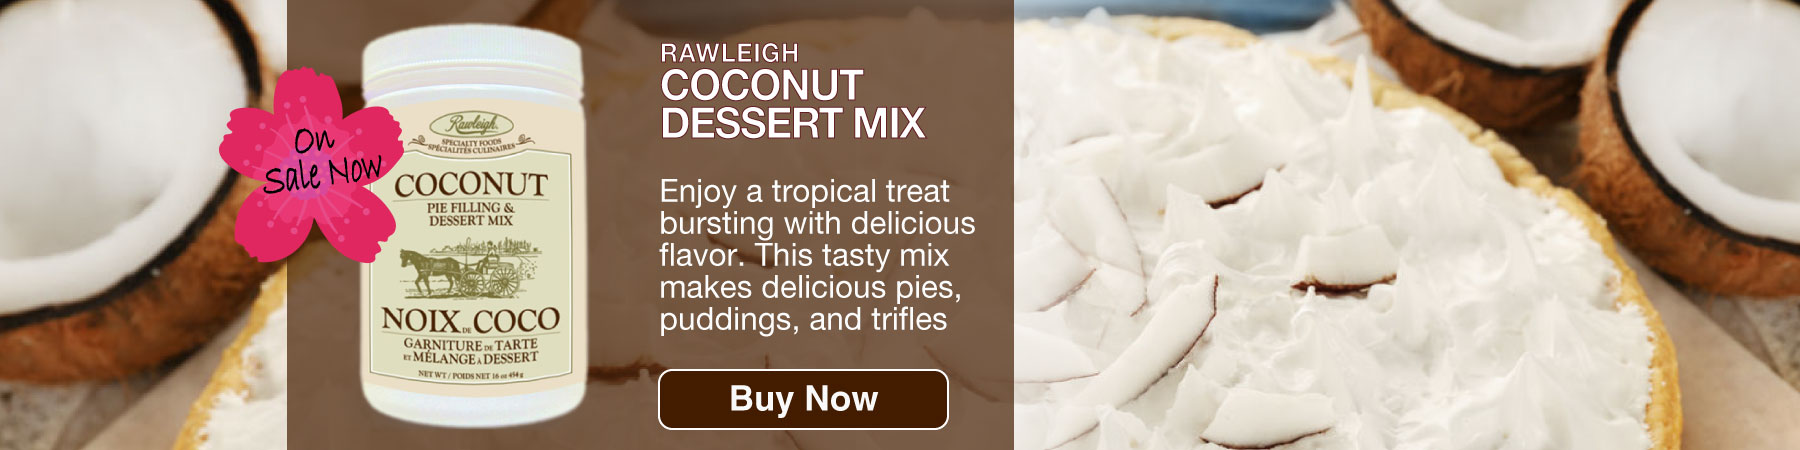 Coconut dessert mix